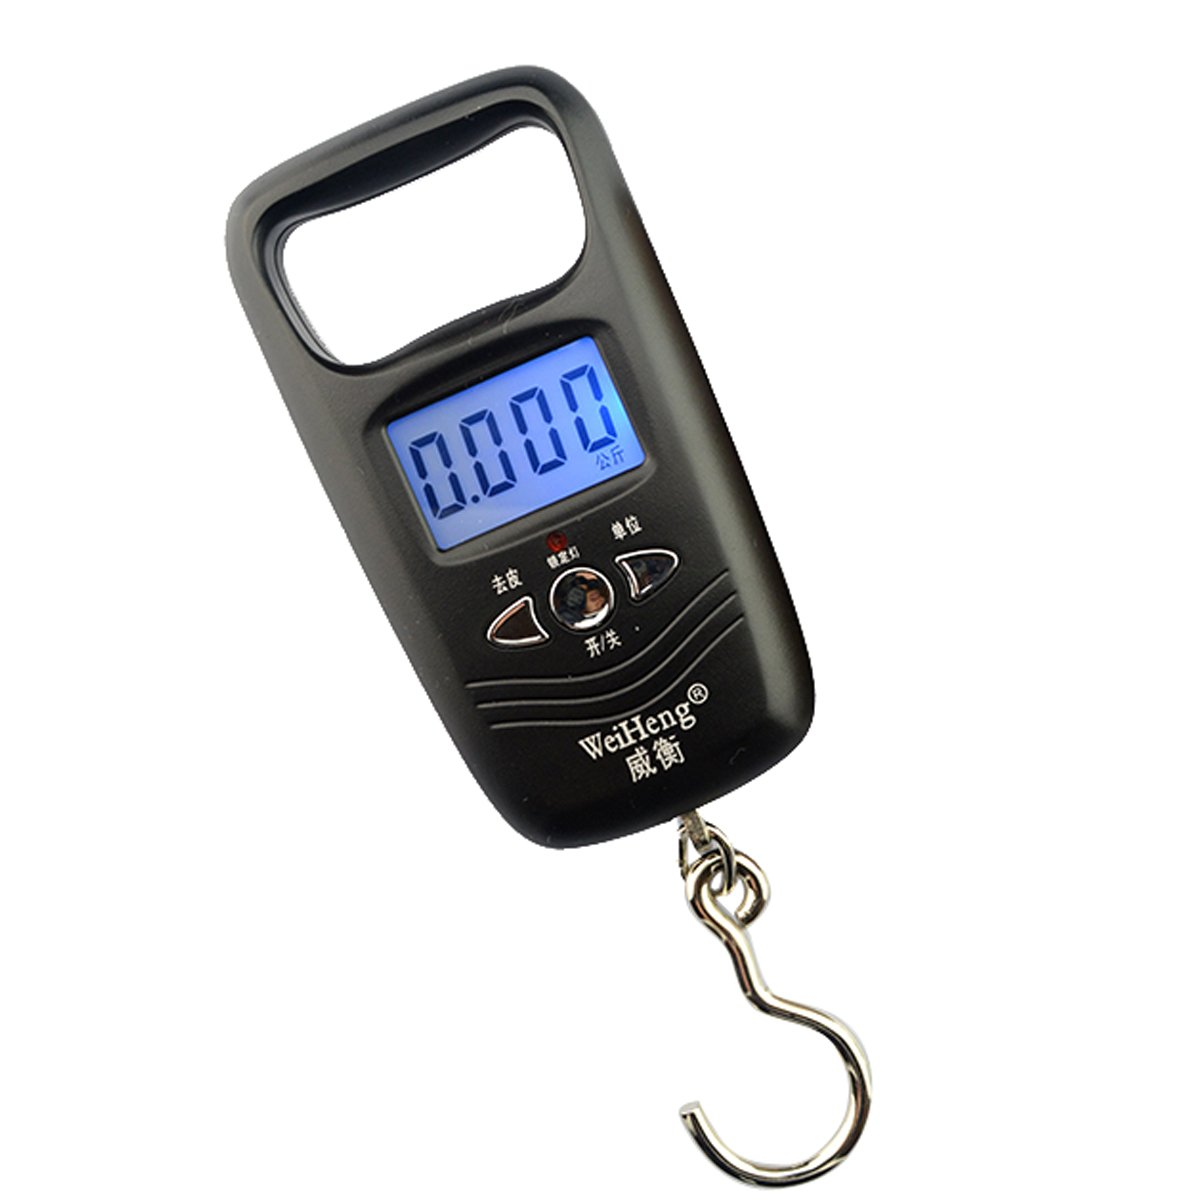 Aubig WH-A17L 50kg*10g Portable Electronic Luggage Scale - Black by